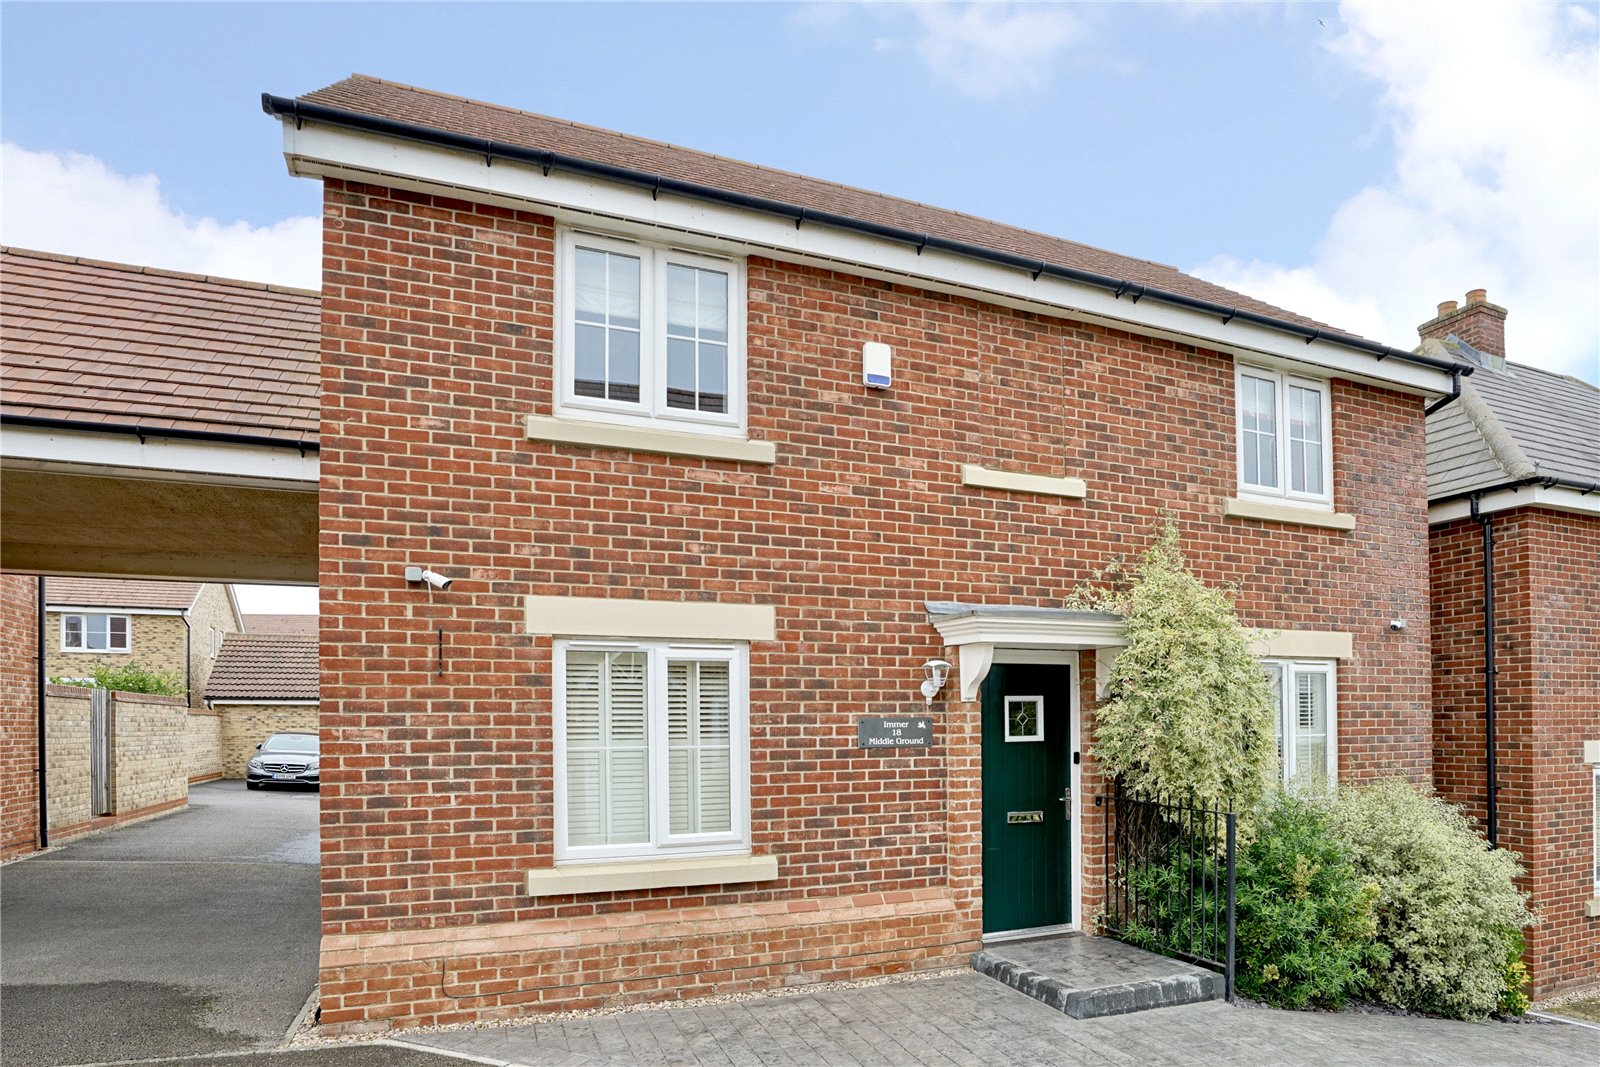 4 bed house for sale in St. Neots, PE19 6BE, PE19